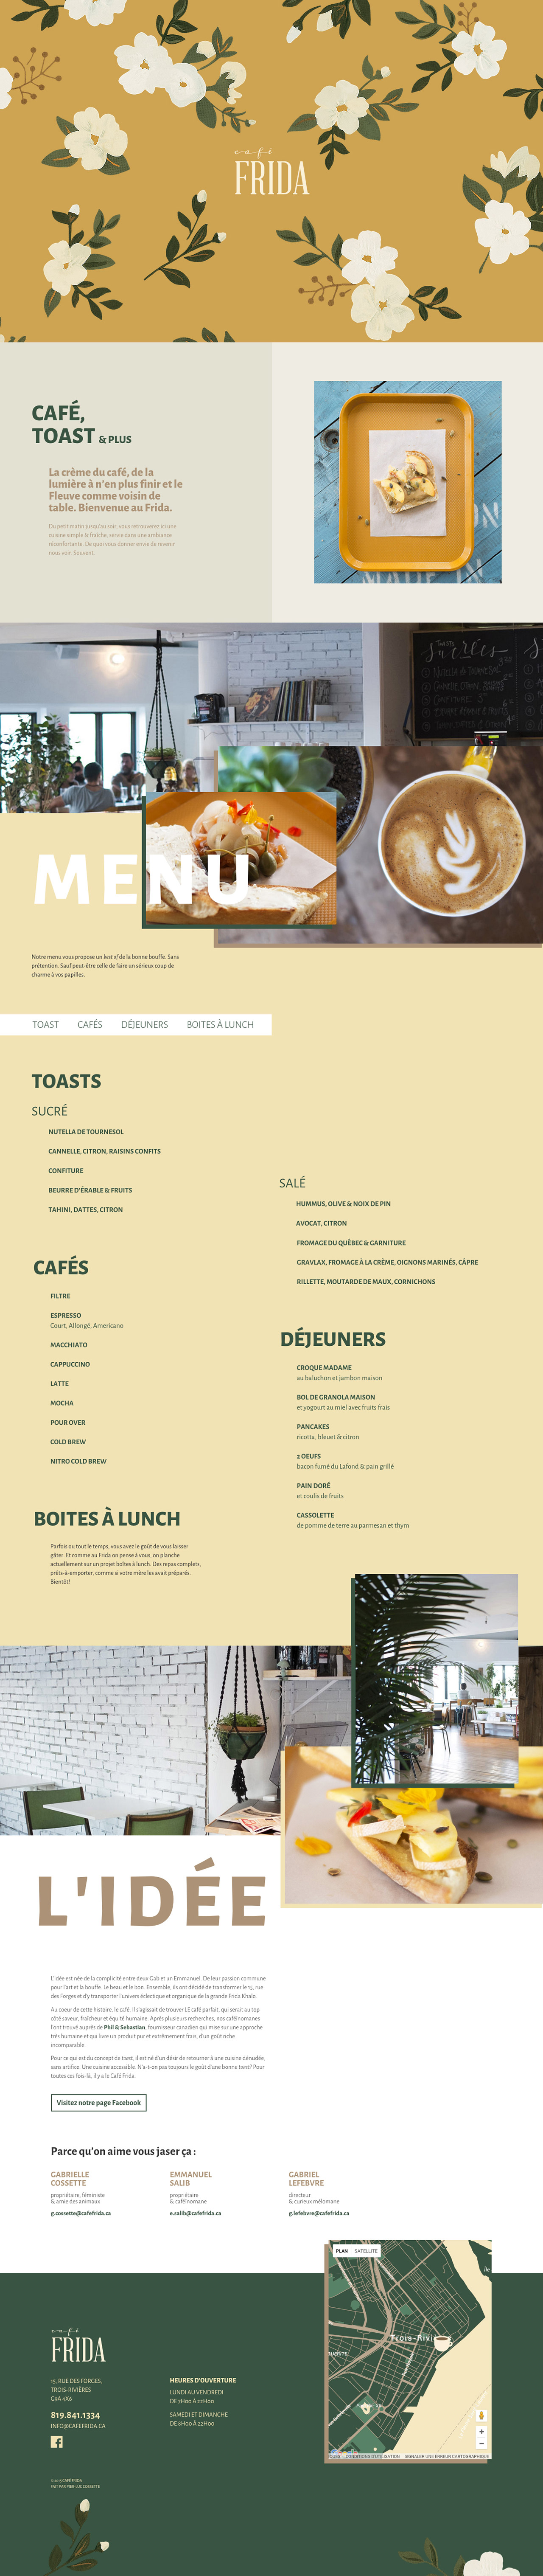 Café Frida Website Screenshot